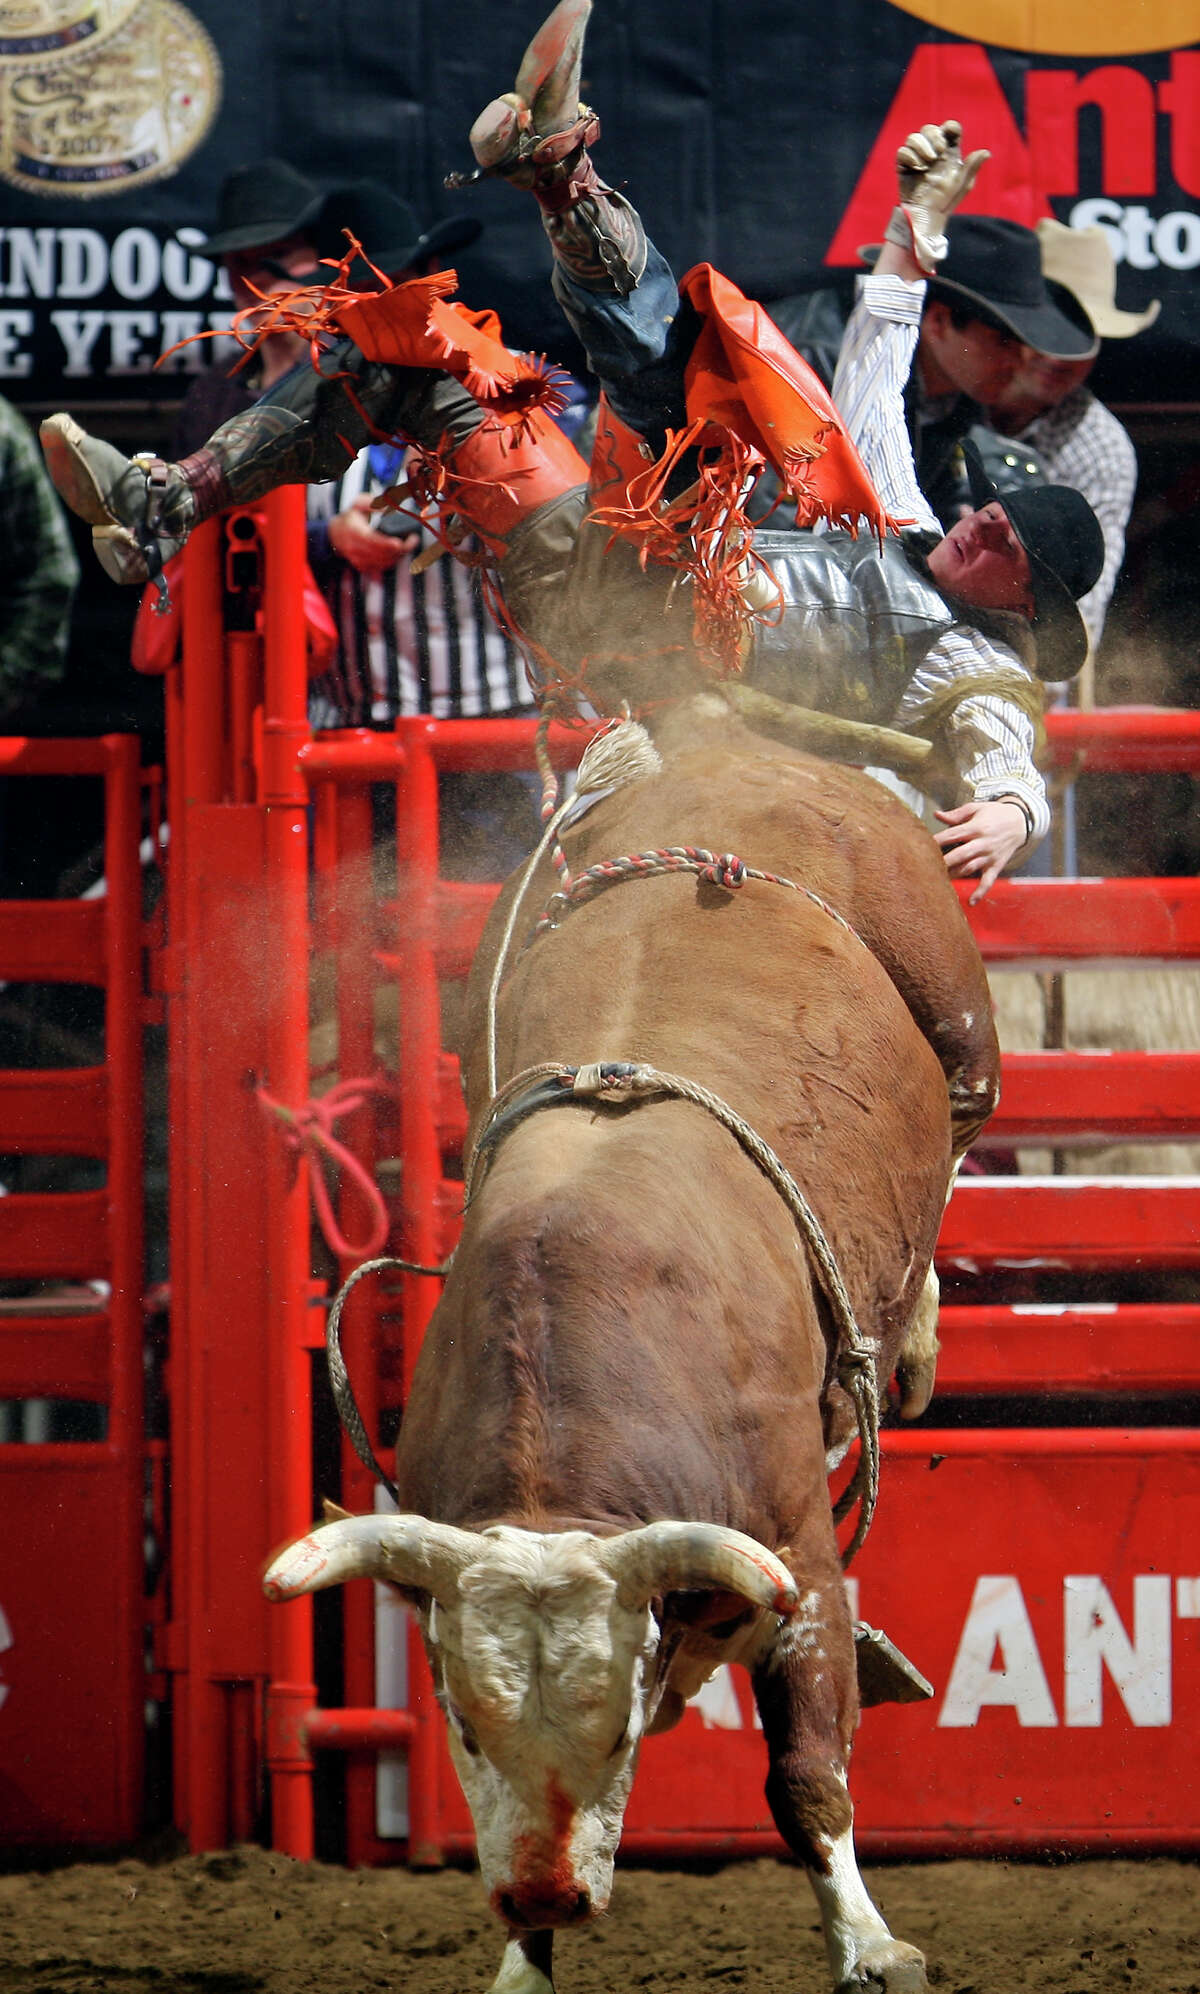 Chris Roundy, from Panguitch, UT, is thrown off his bull in the Bull Riding event Sunday Feb. 13, 2011 during the San Antonio Stock Show & Rodeo at the AT&T Center.